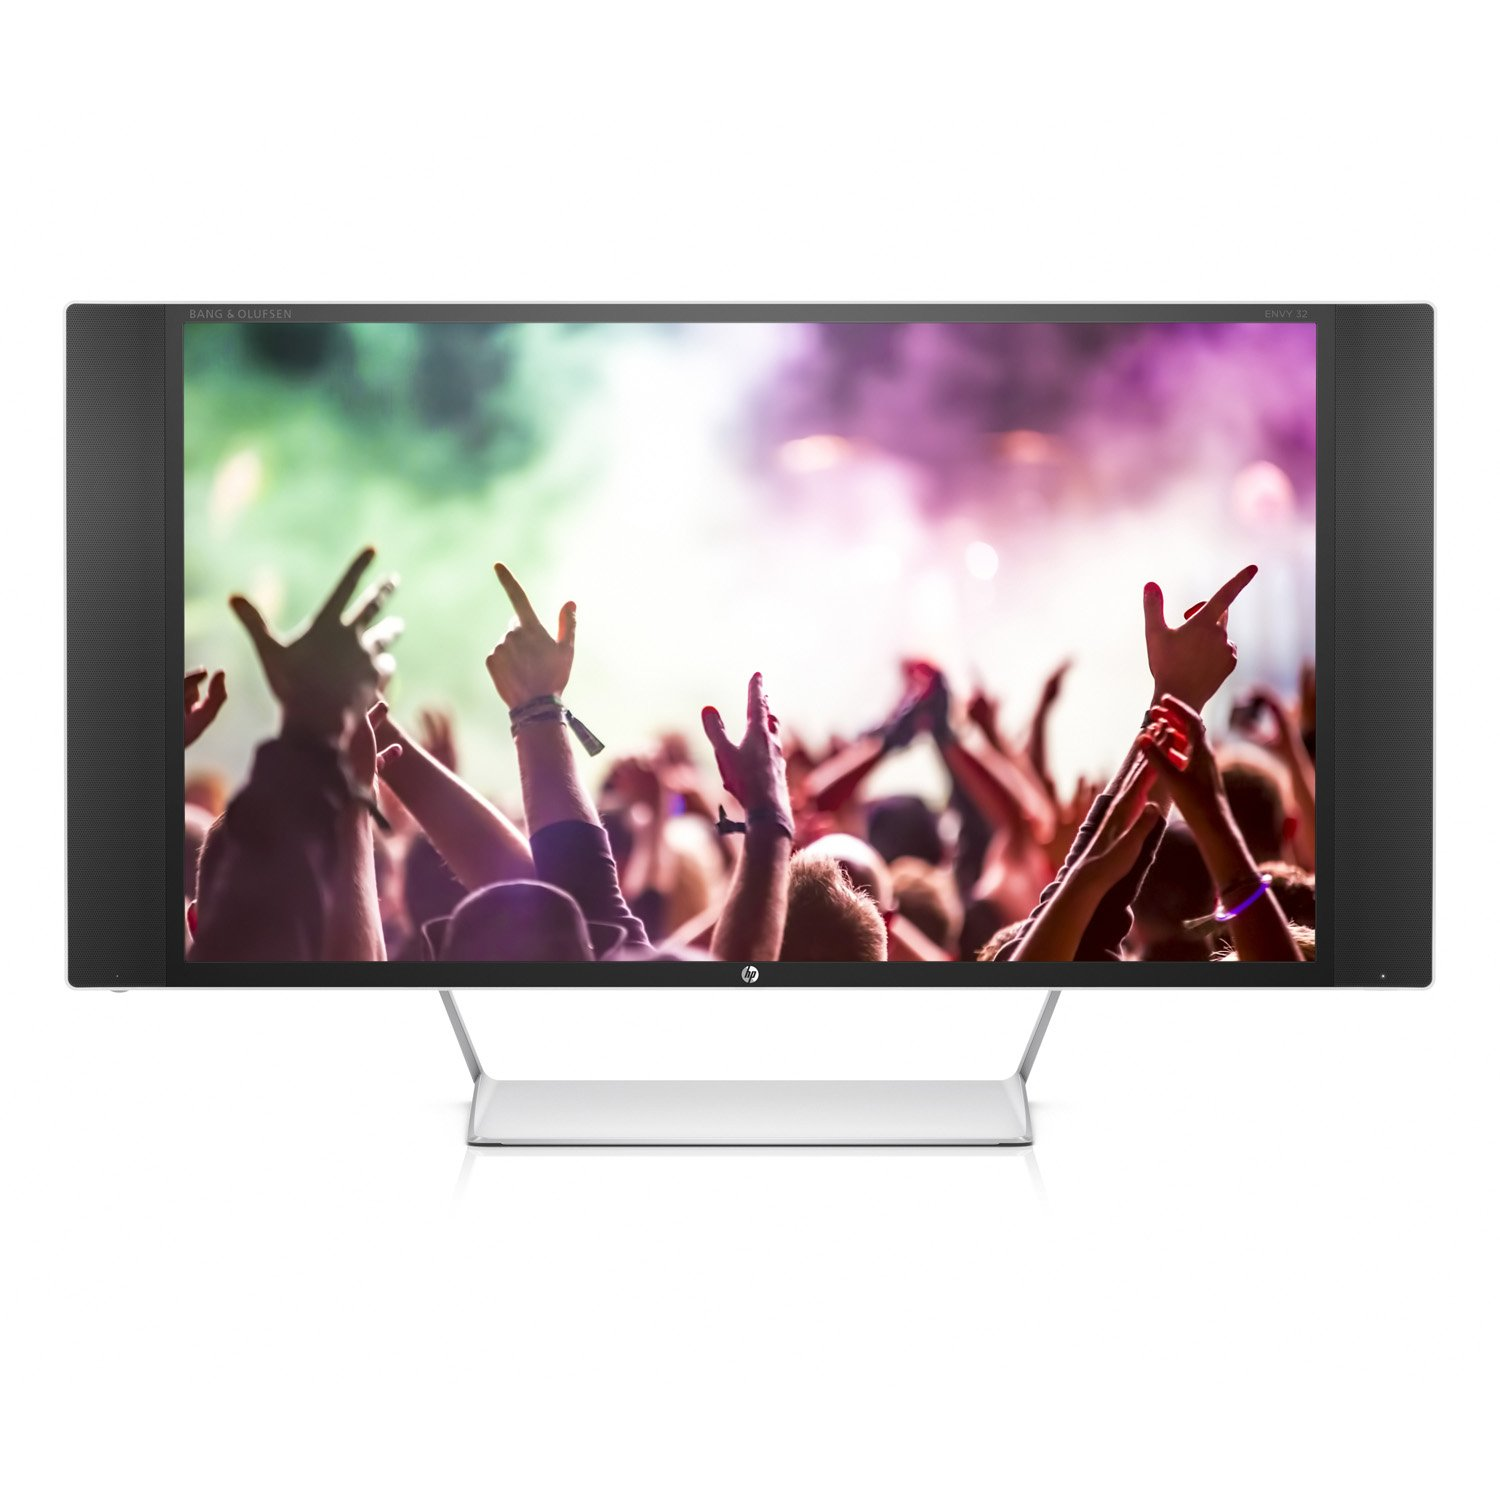 HP ENVY 32-Inch QHD Media Display with Bang & Olufsen Speakers by HP